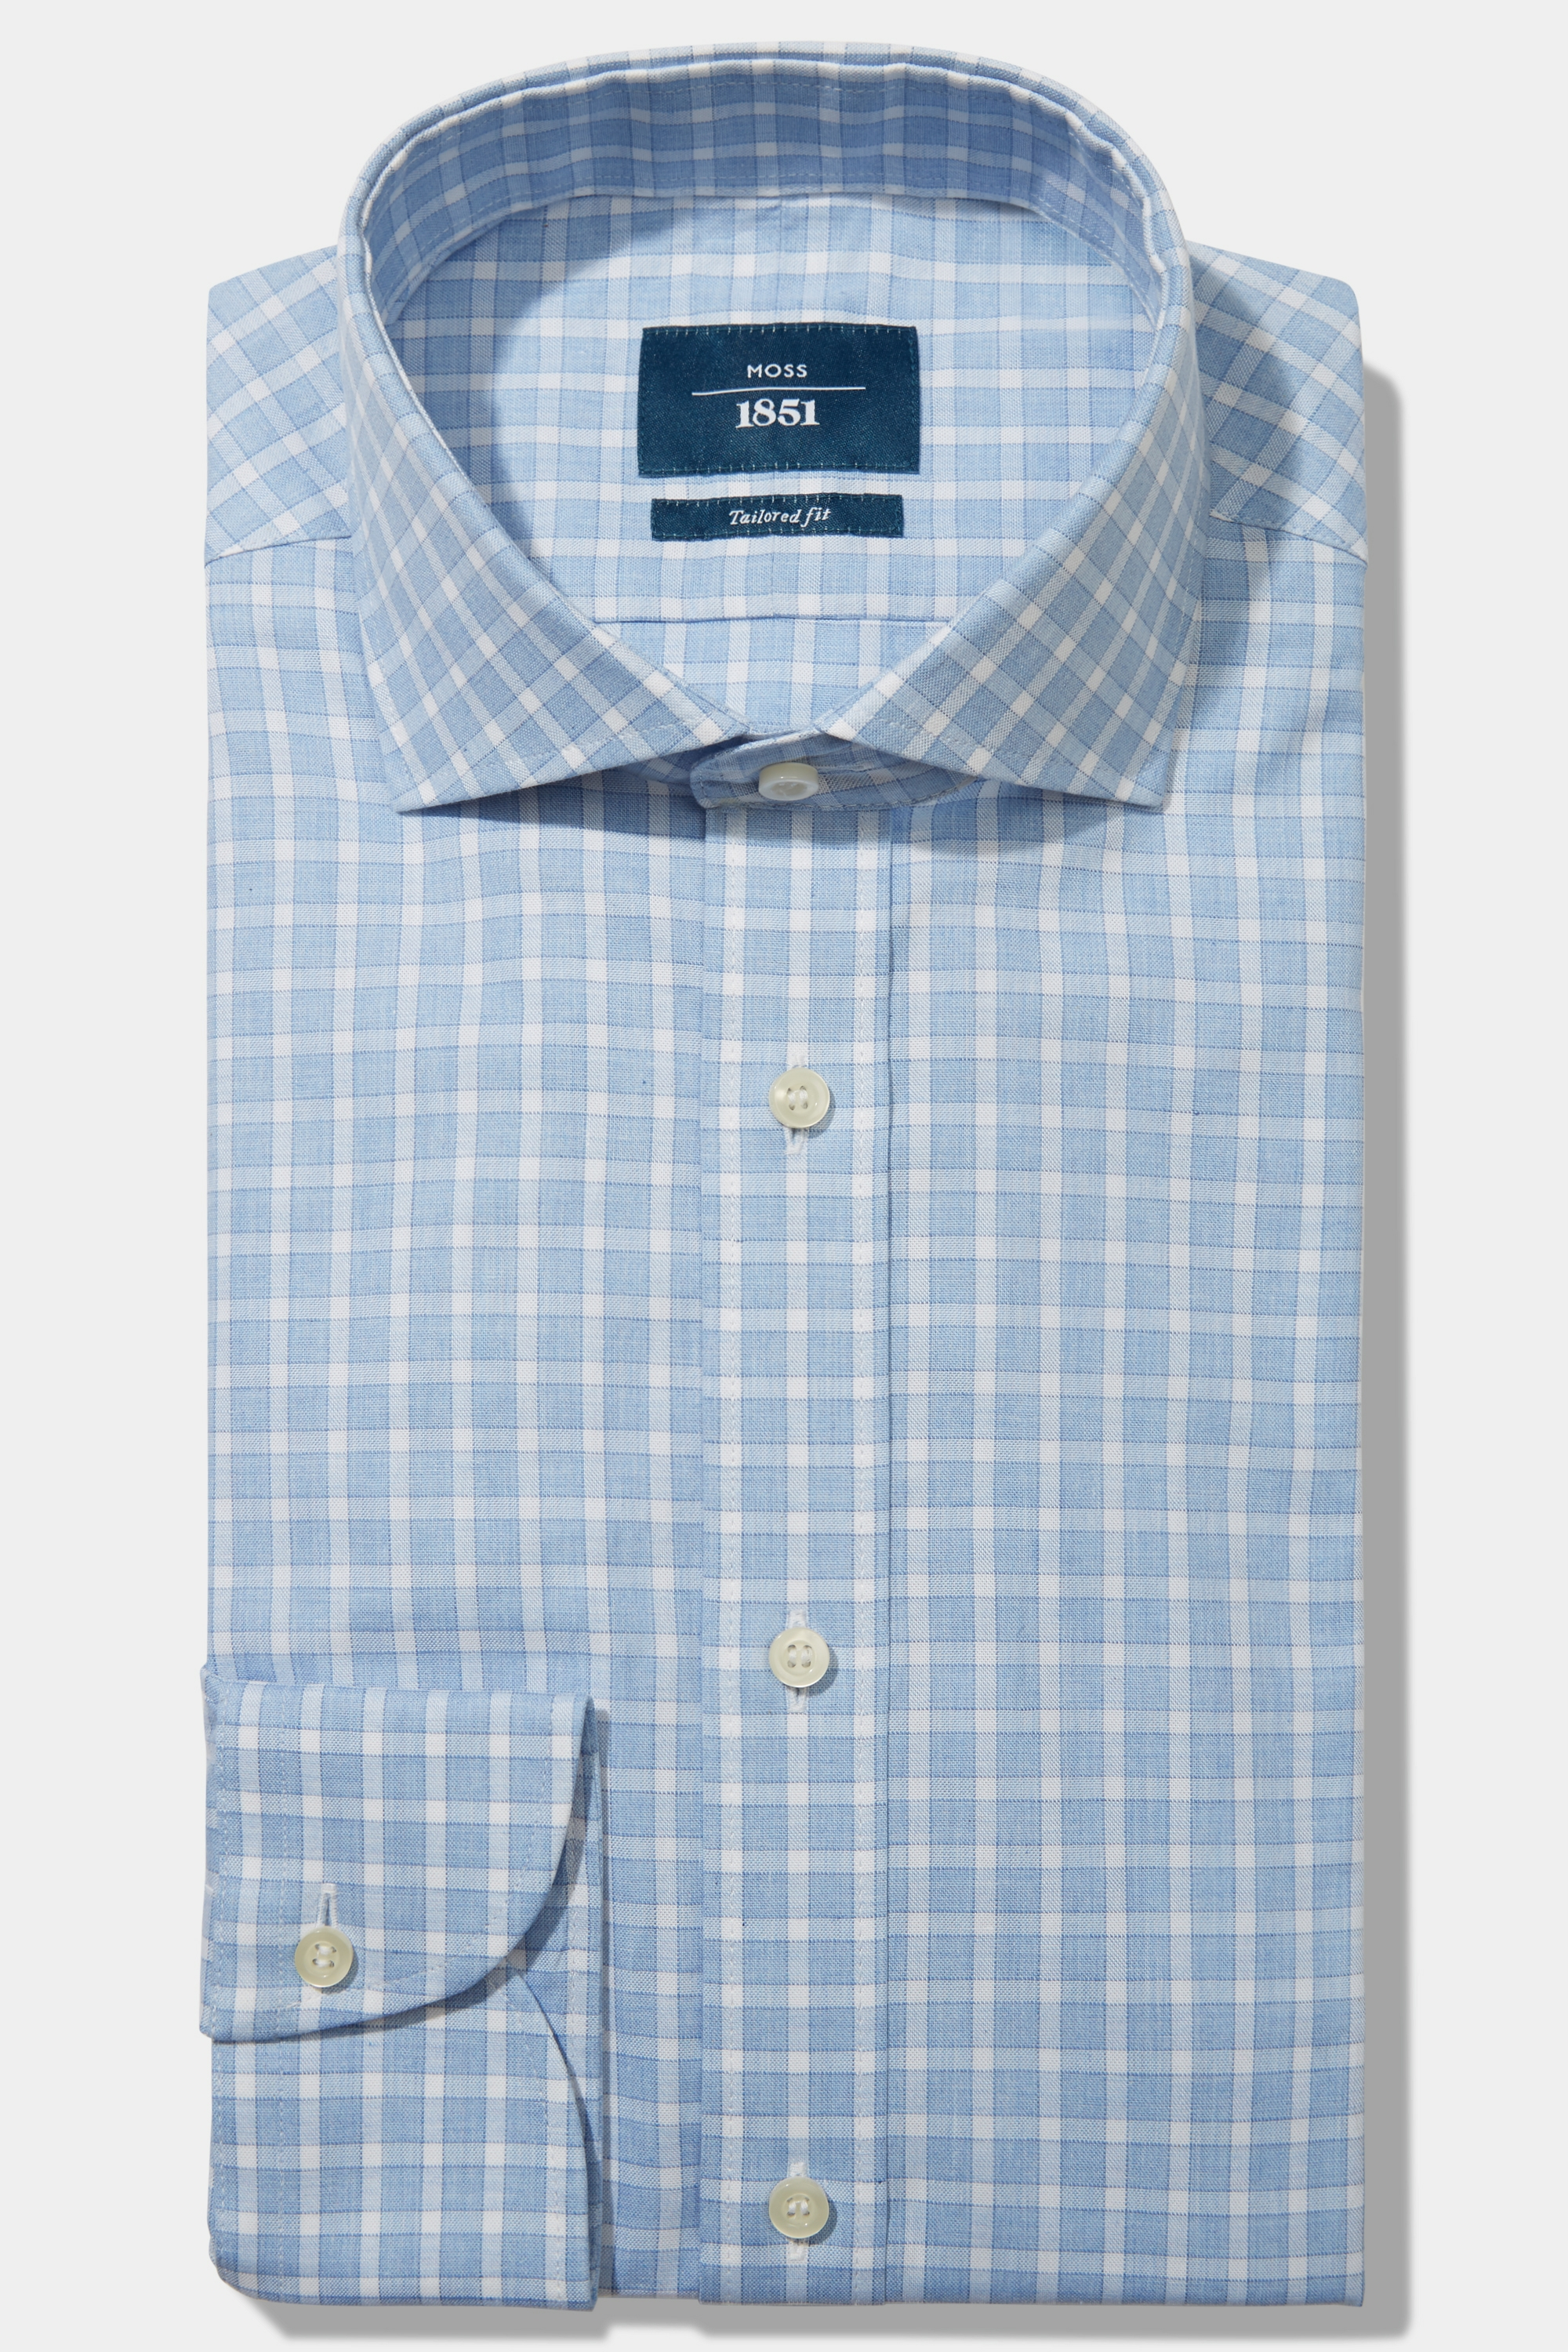 Moss Bros Moss 1851 Tailored Fit Sky Single Cuff Dobby Check Shirt